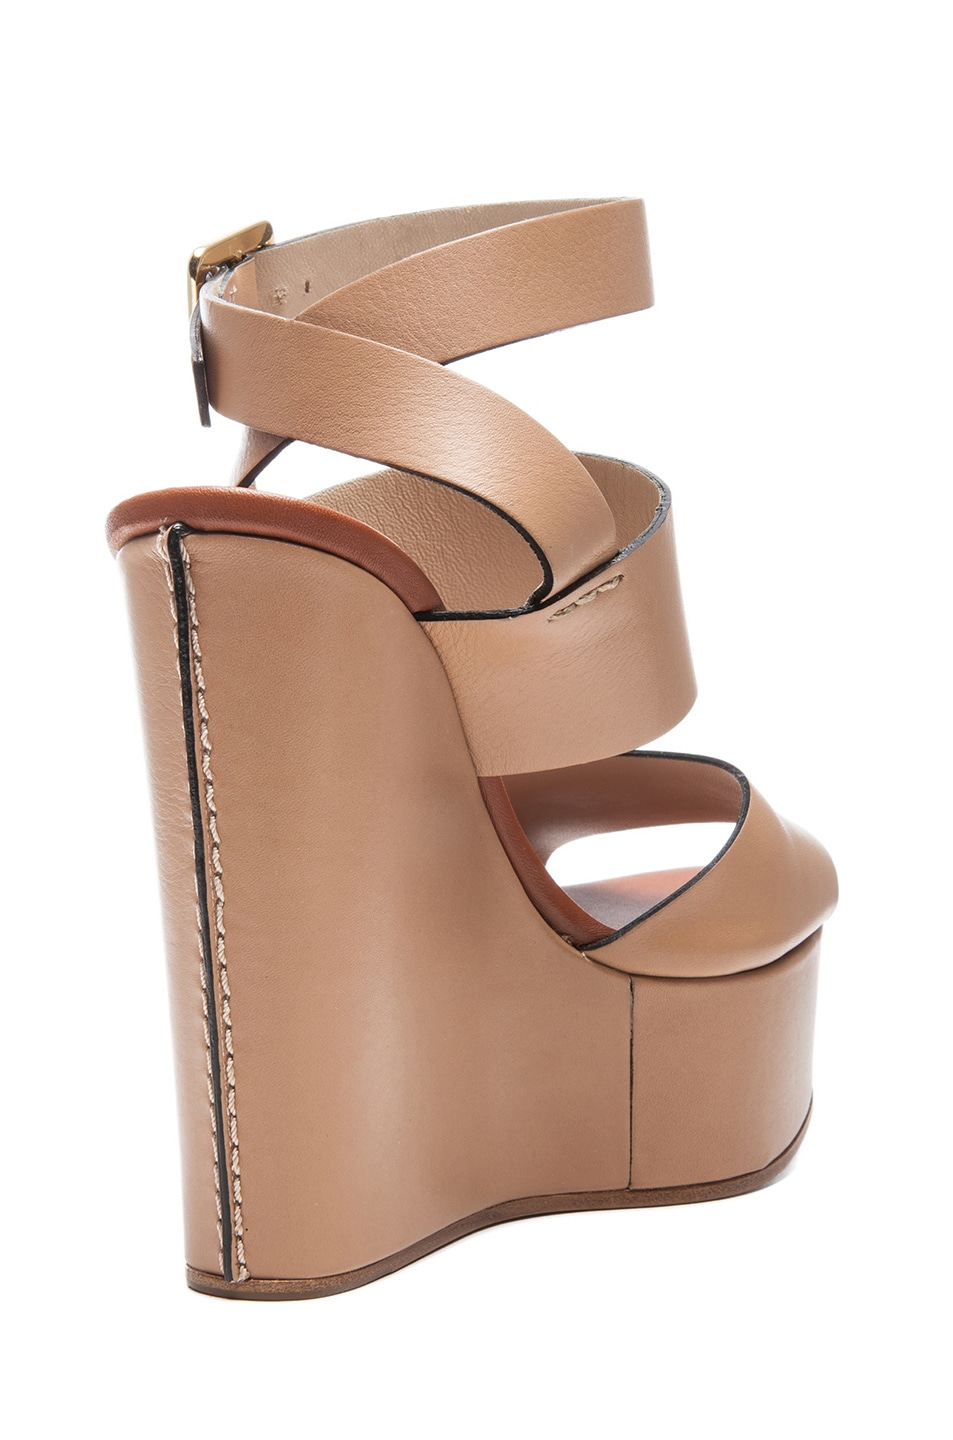 Image 3 of Chloe Leather Wedges in Wet Sand